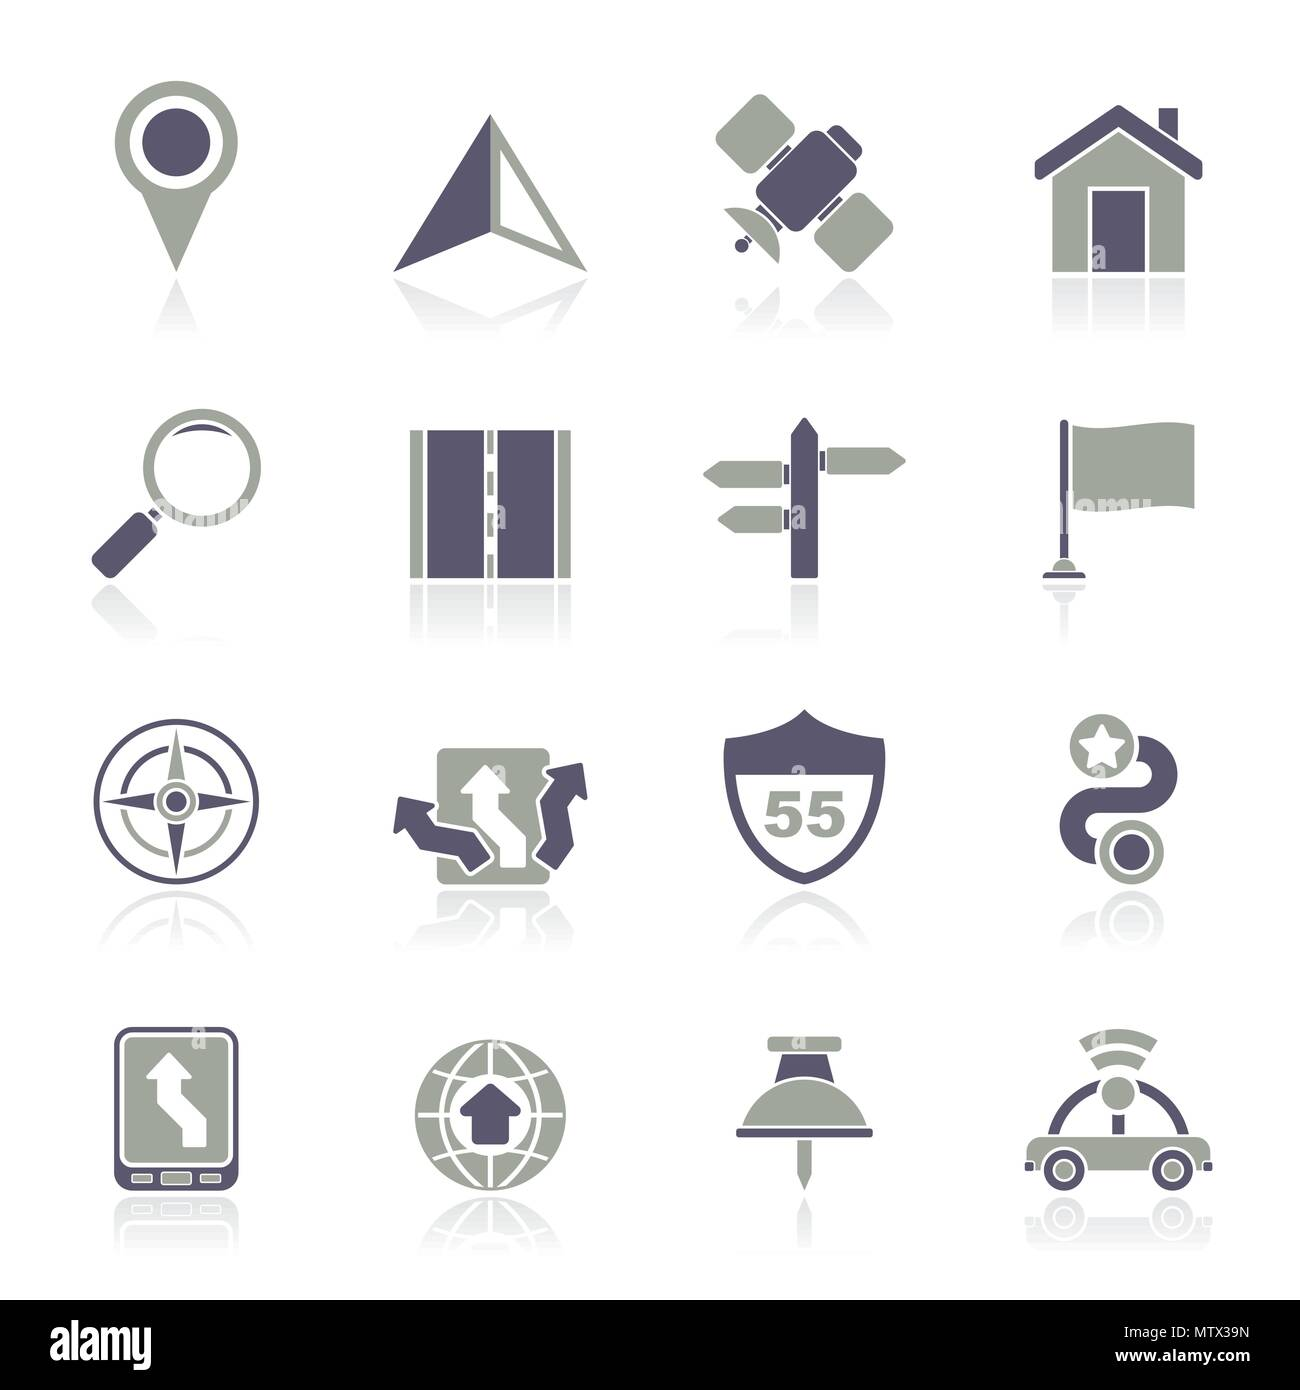 Gps, navigation and road icons - vector icon set Stock Vector